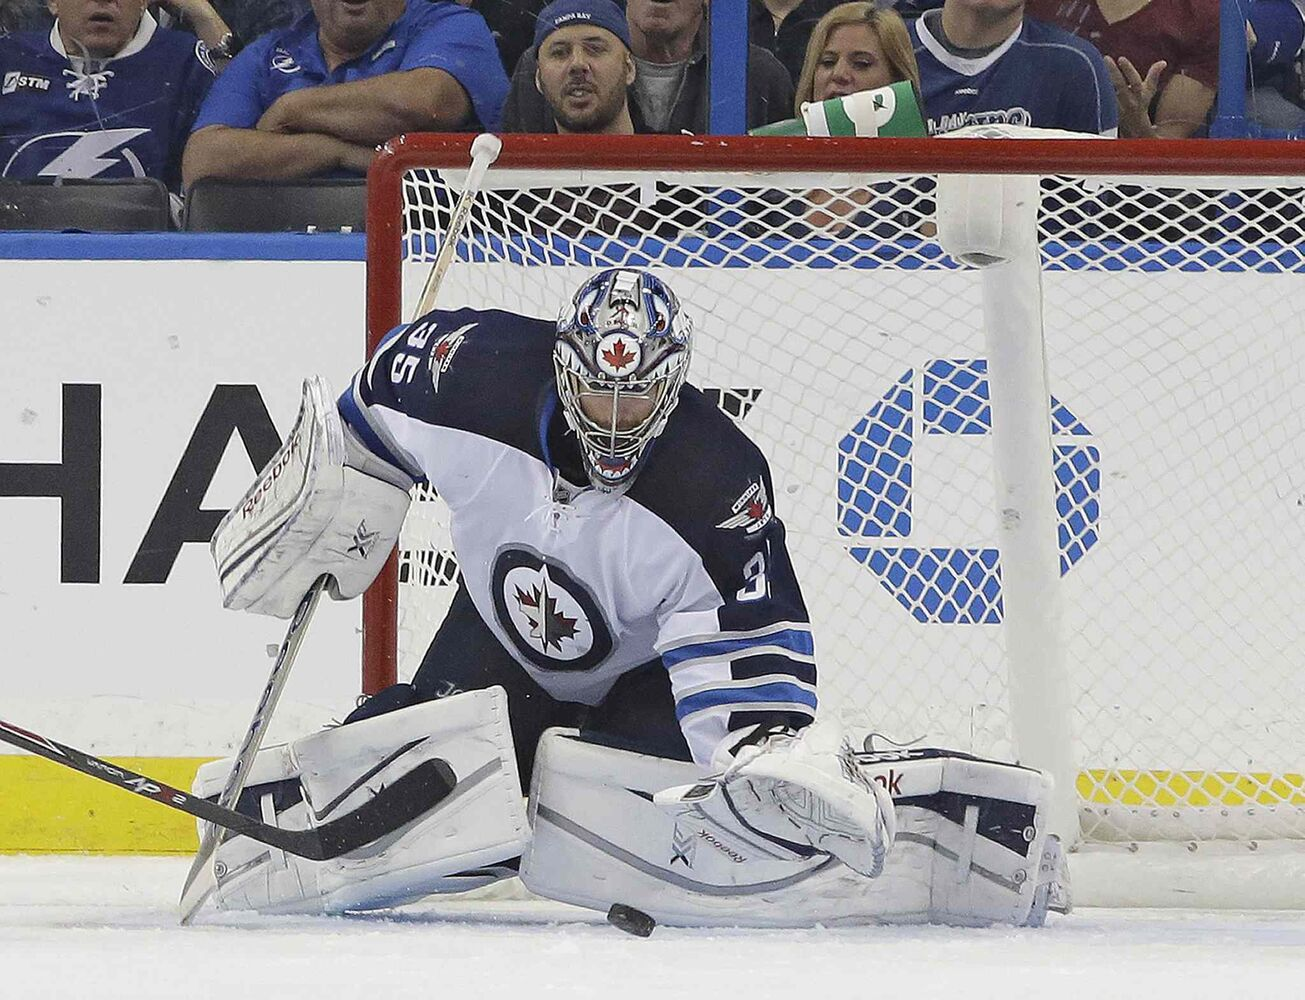 Winnipeg Jets goalie Al Montoya grabs a shot by the Tampa Bay Lightning during the third period. (Chris O'Meara / The Associated Press)